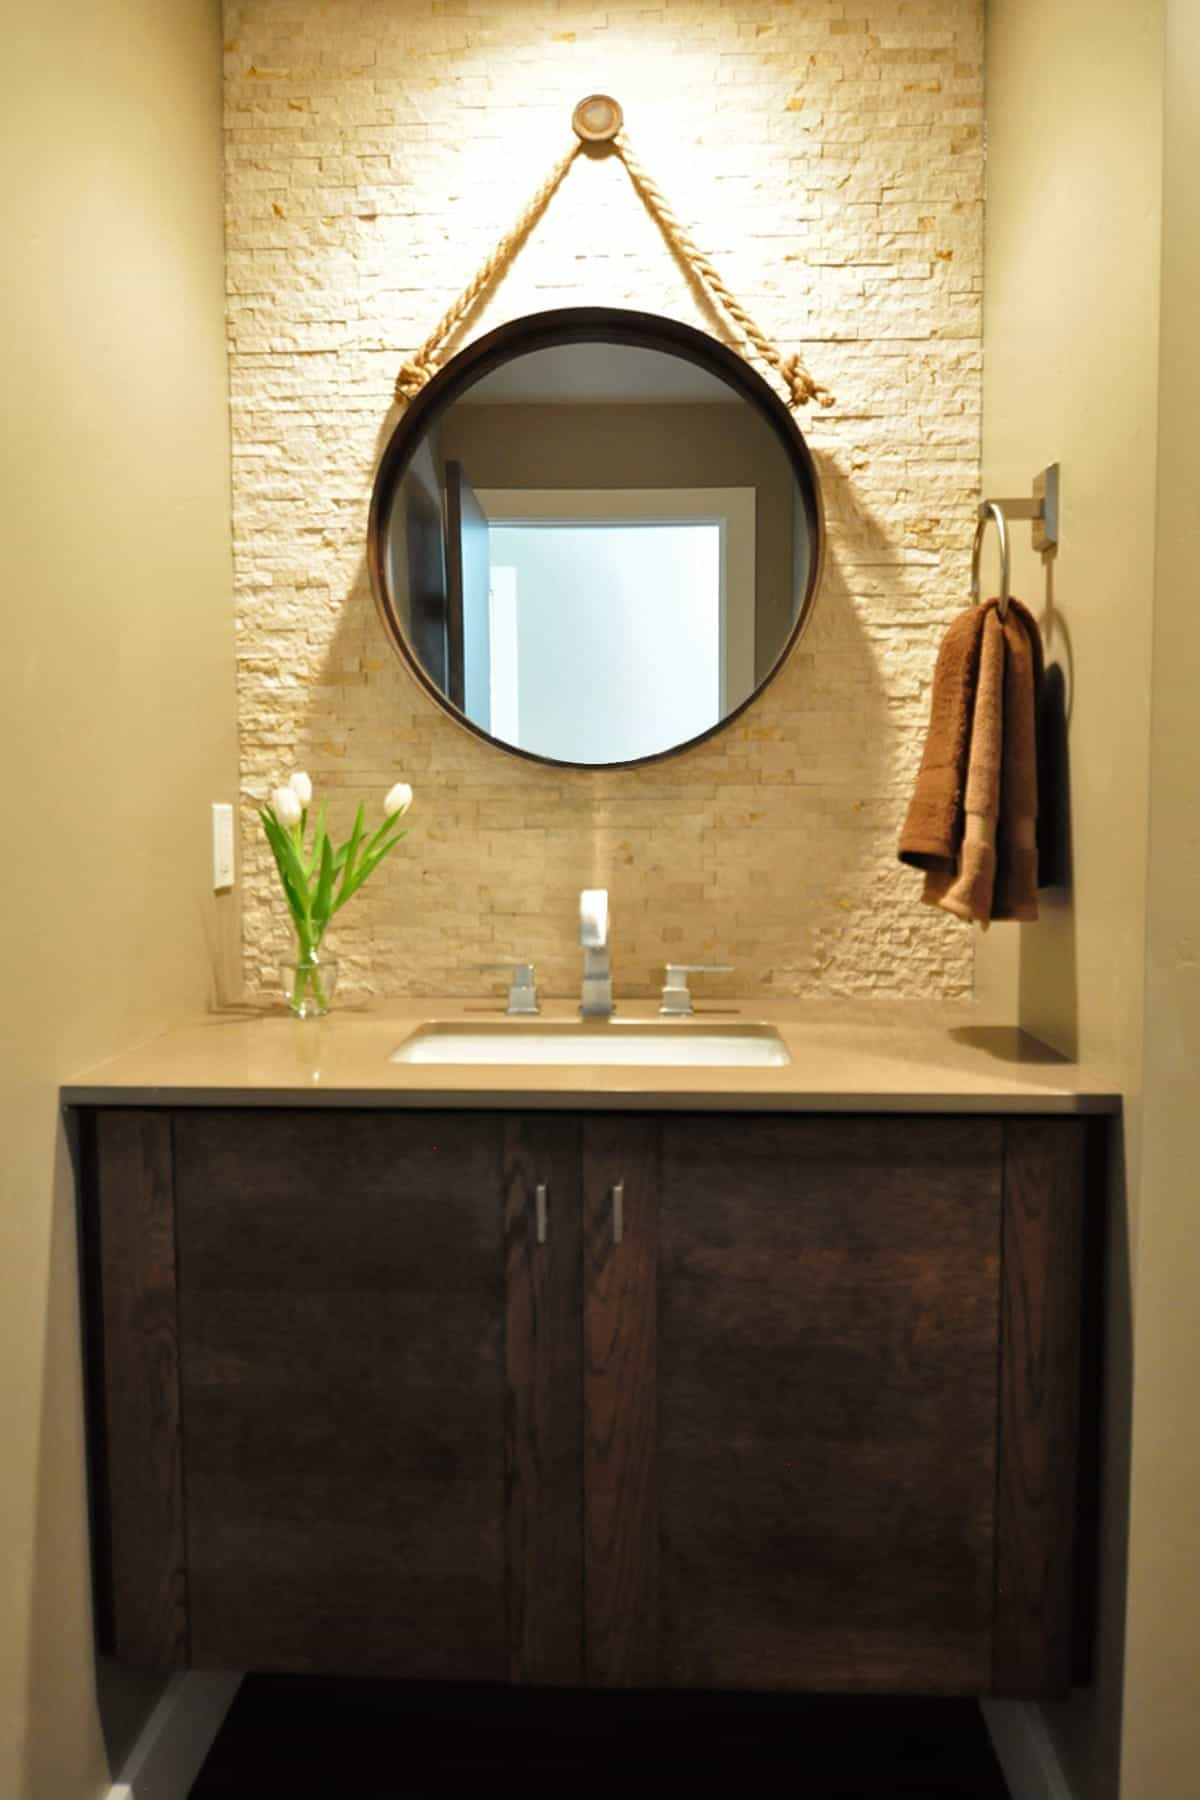 Circular Blue Bathroom Mirror With Lighting In The Back (Image 5 of 20)